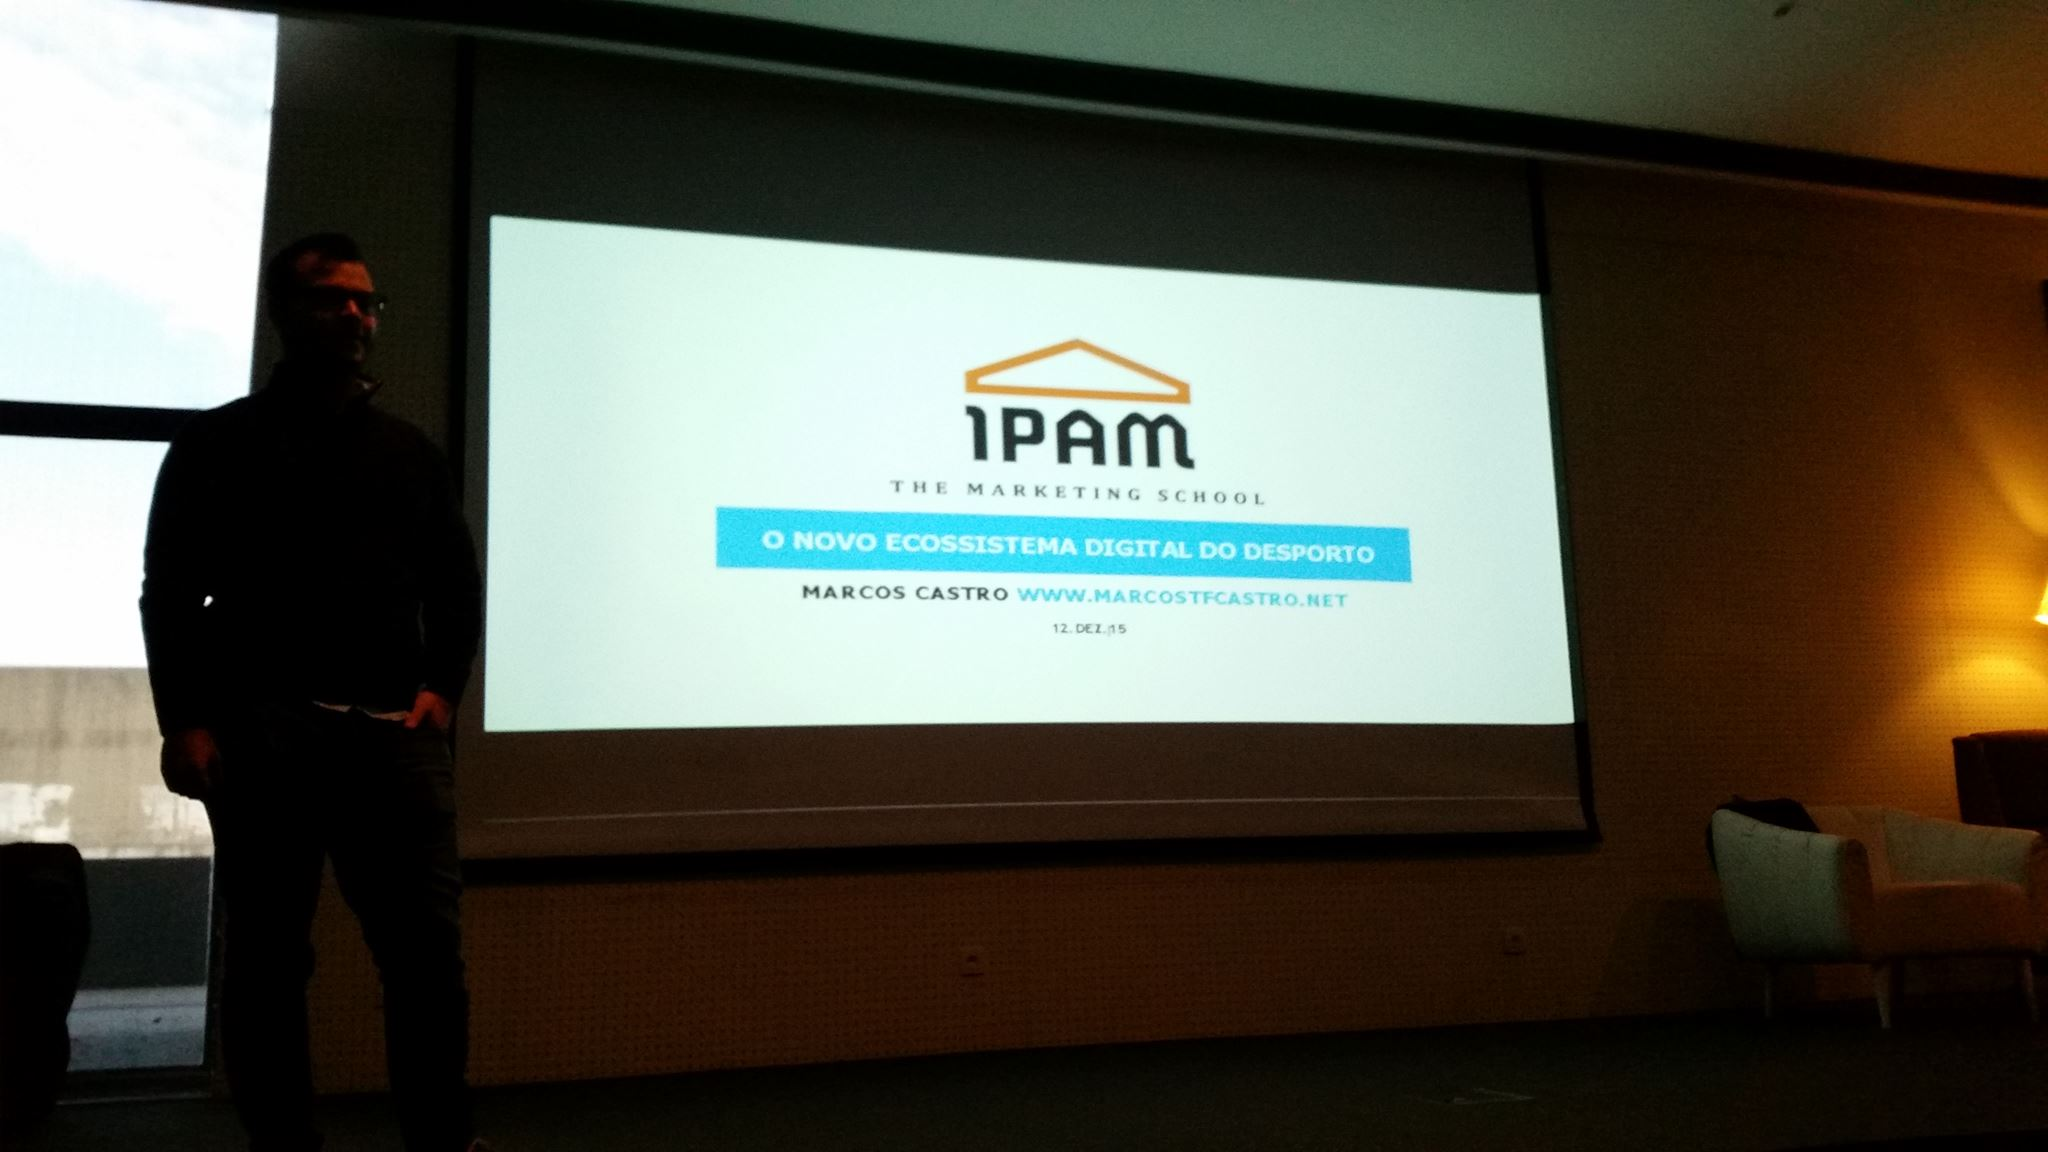 ipam marketing digital desporto